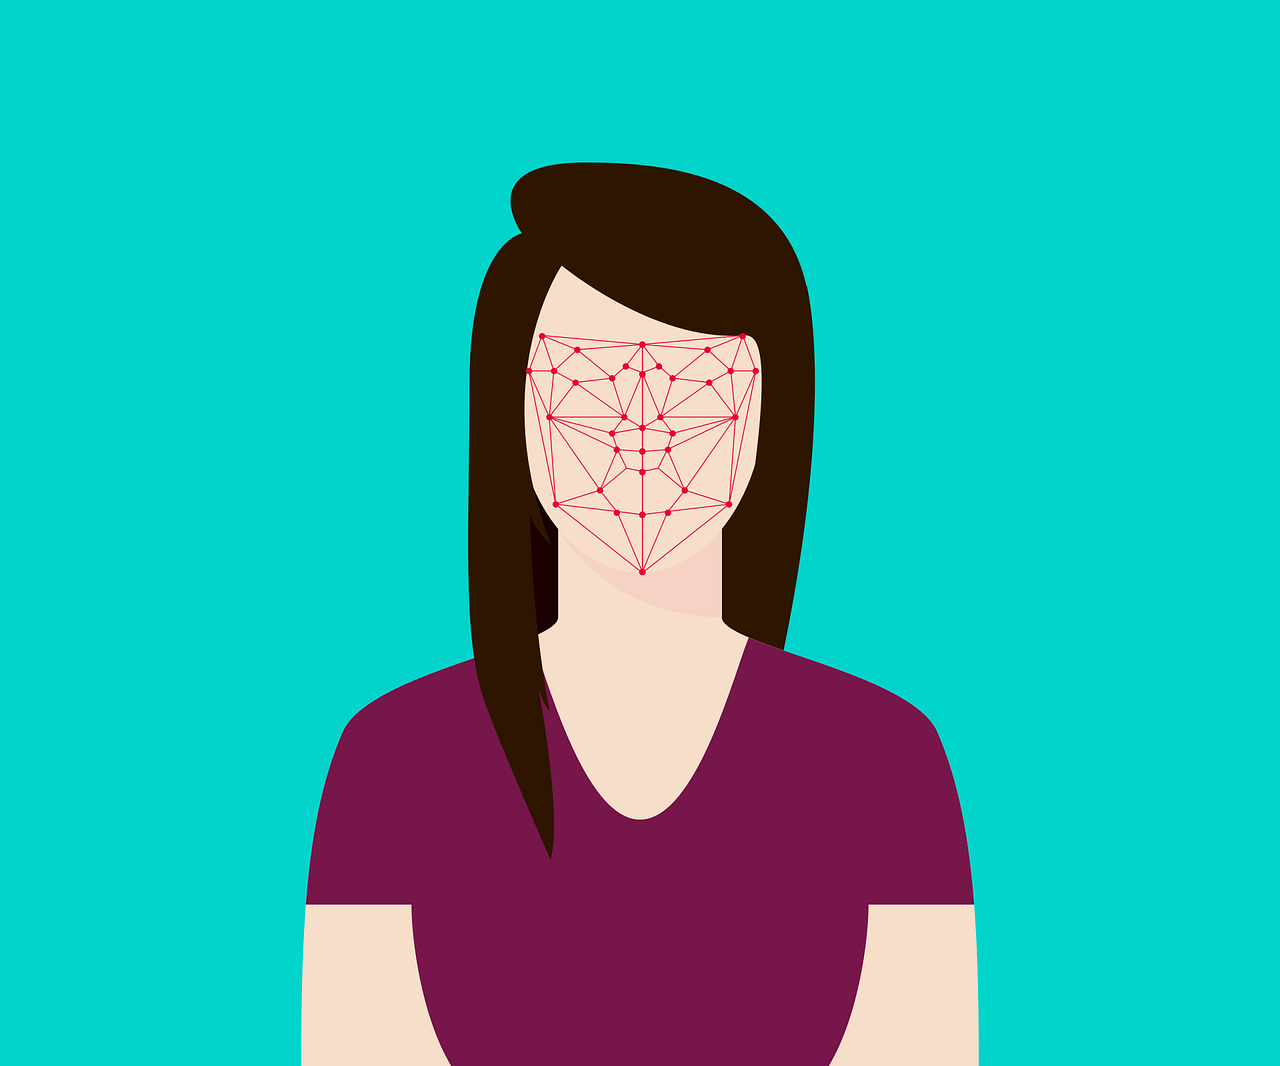 Starting December 1st, China's new MLPS 2.0 cybersecurity laws will require submission of a facial scan to receive internet access